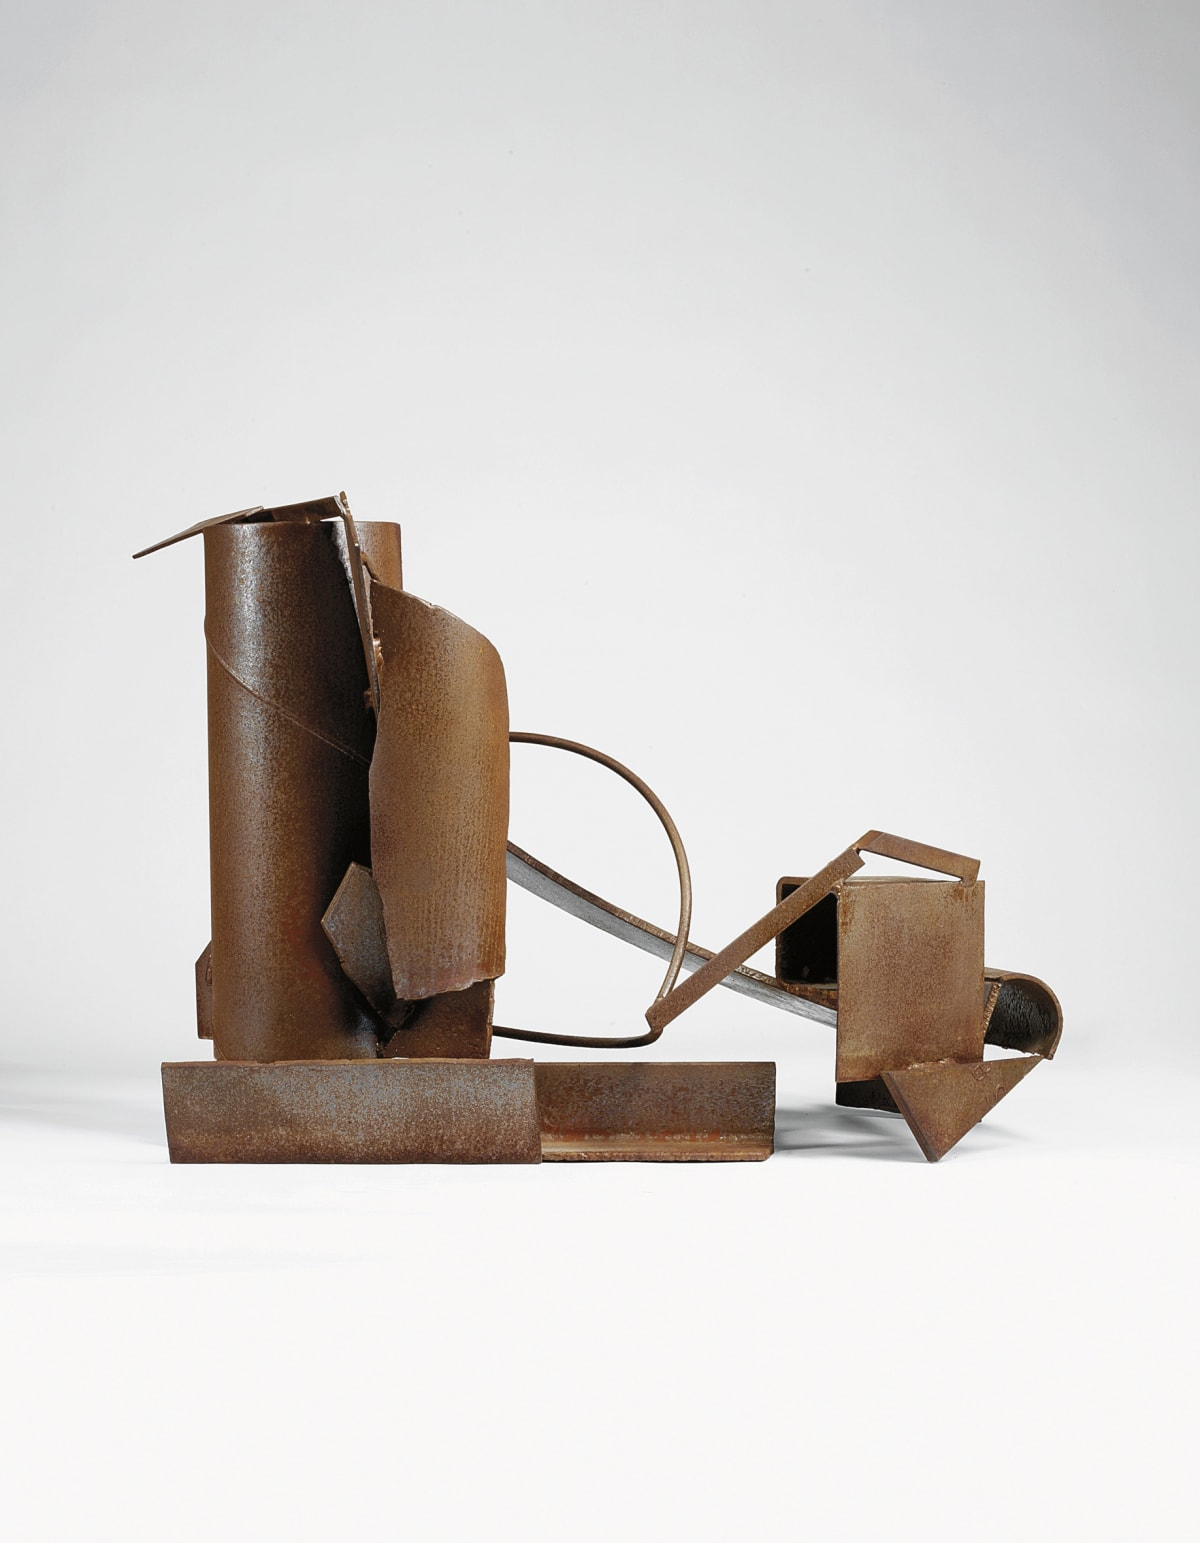 Sir Anthony Caro, Table Piece 2-90 (EBB), 1982